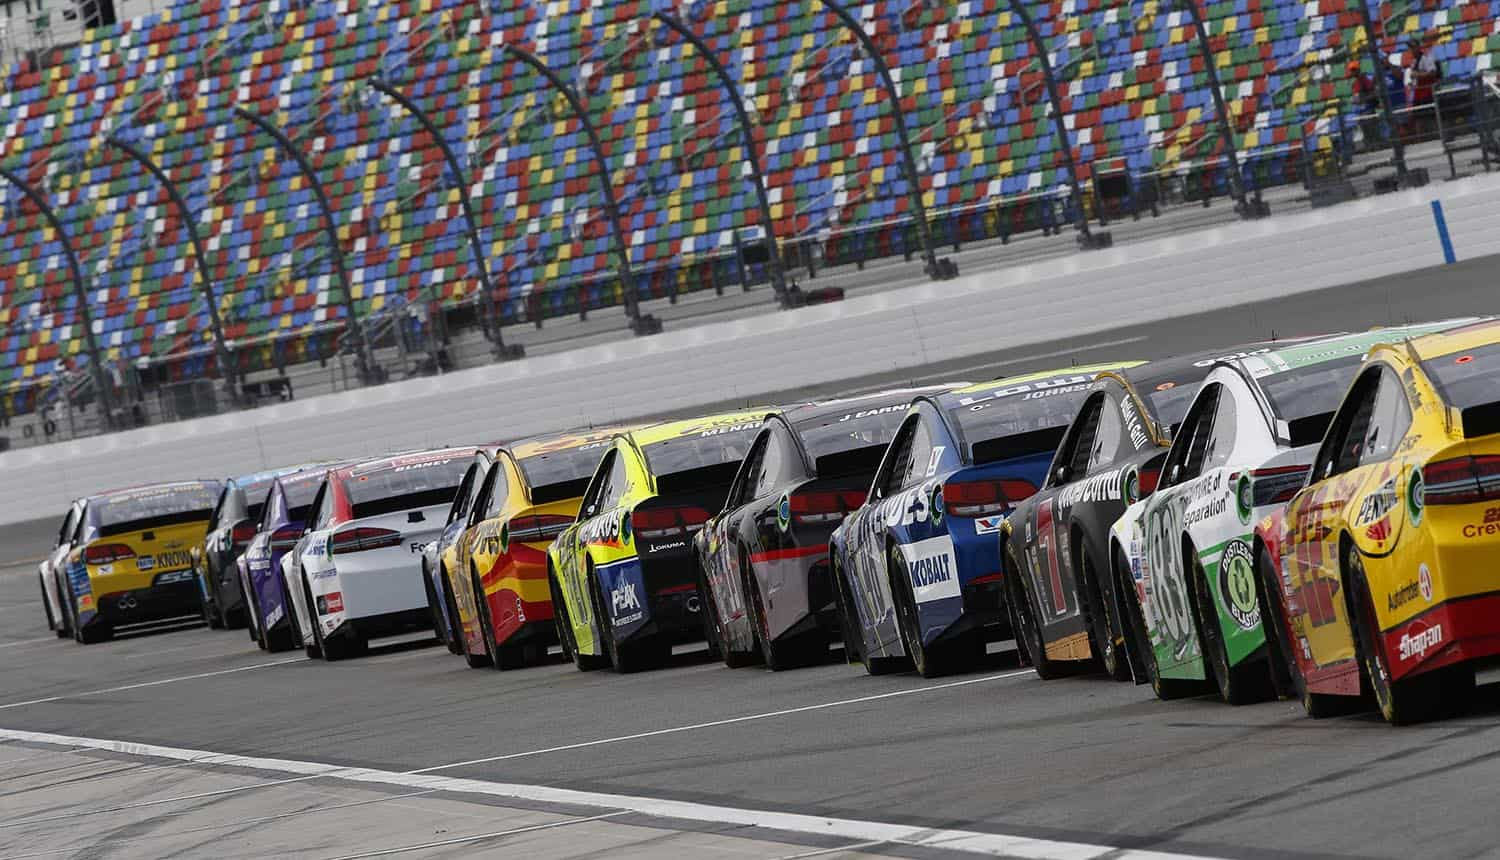 NASCAR teams takes to the track showing cybersecurity arms race